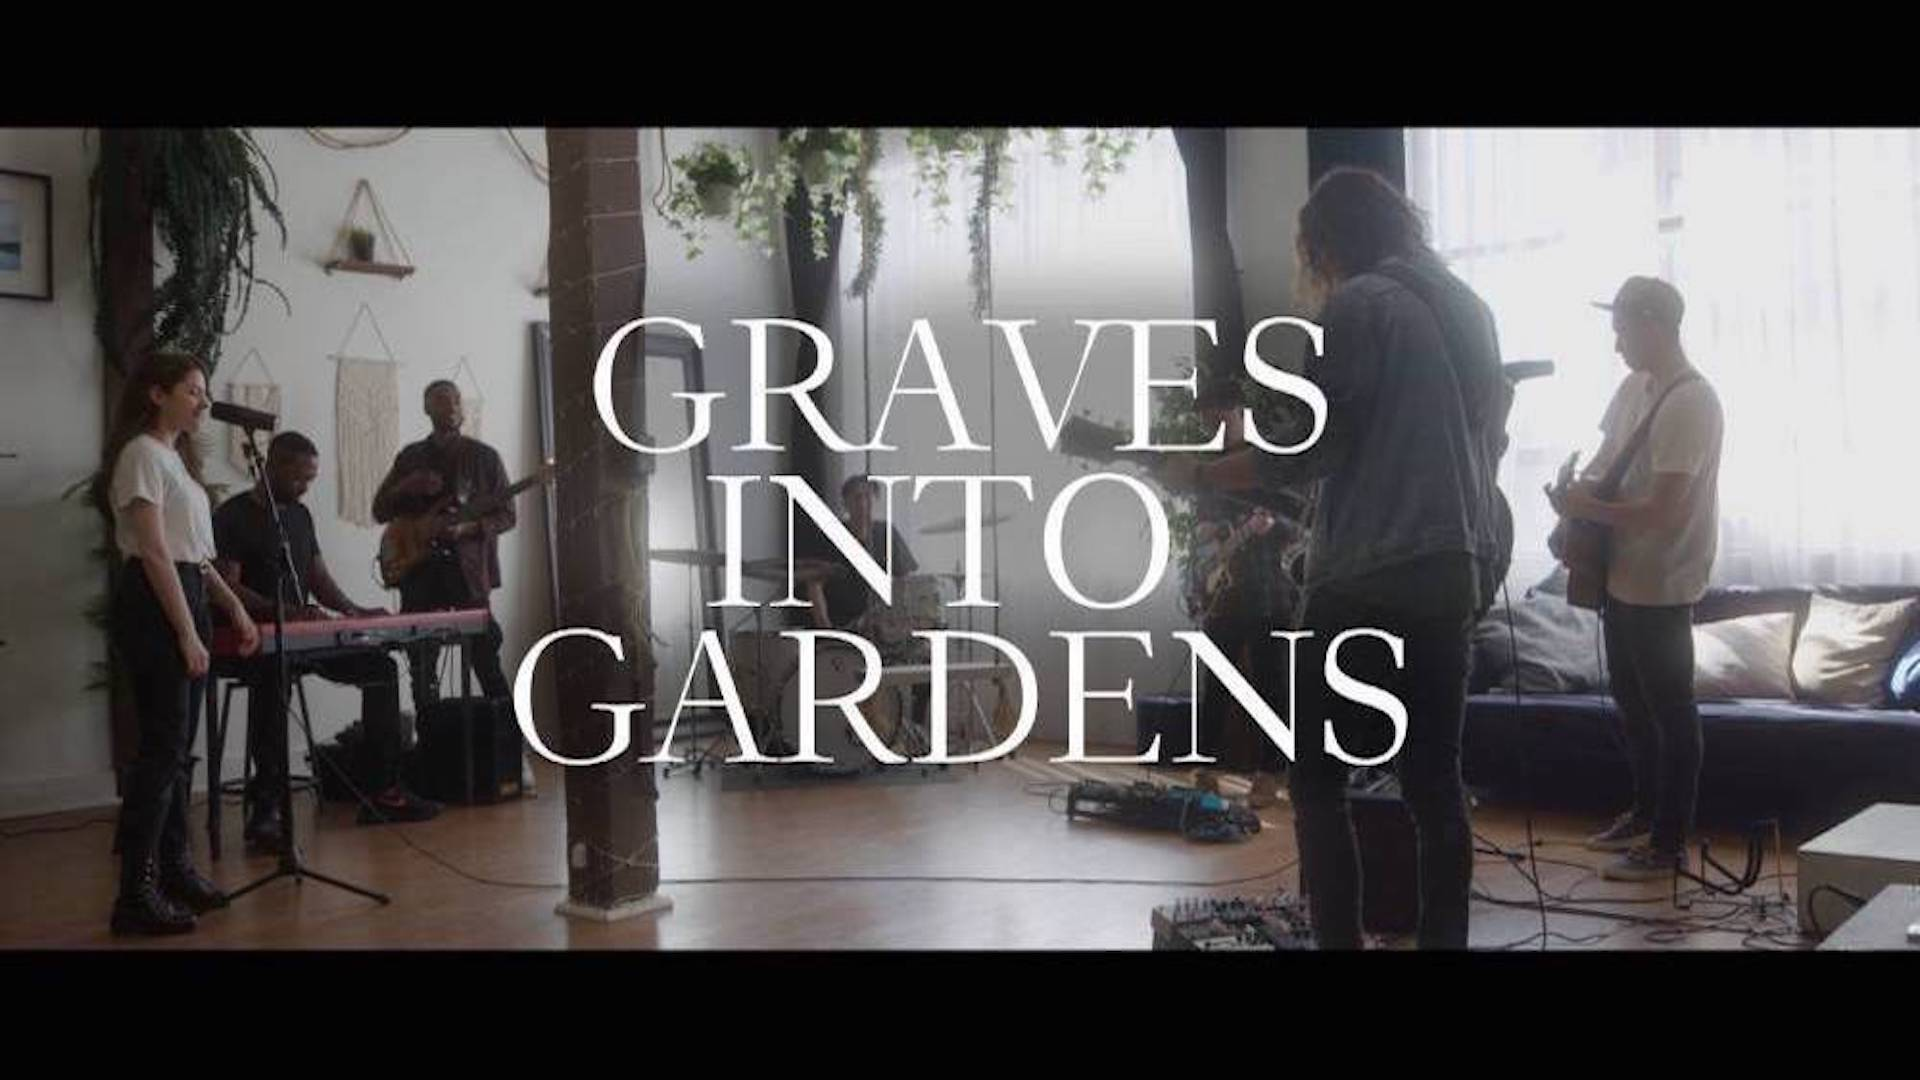 Graves into Gardens (Elevation) - The Worship Project